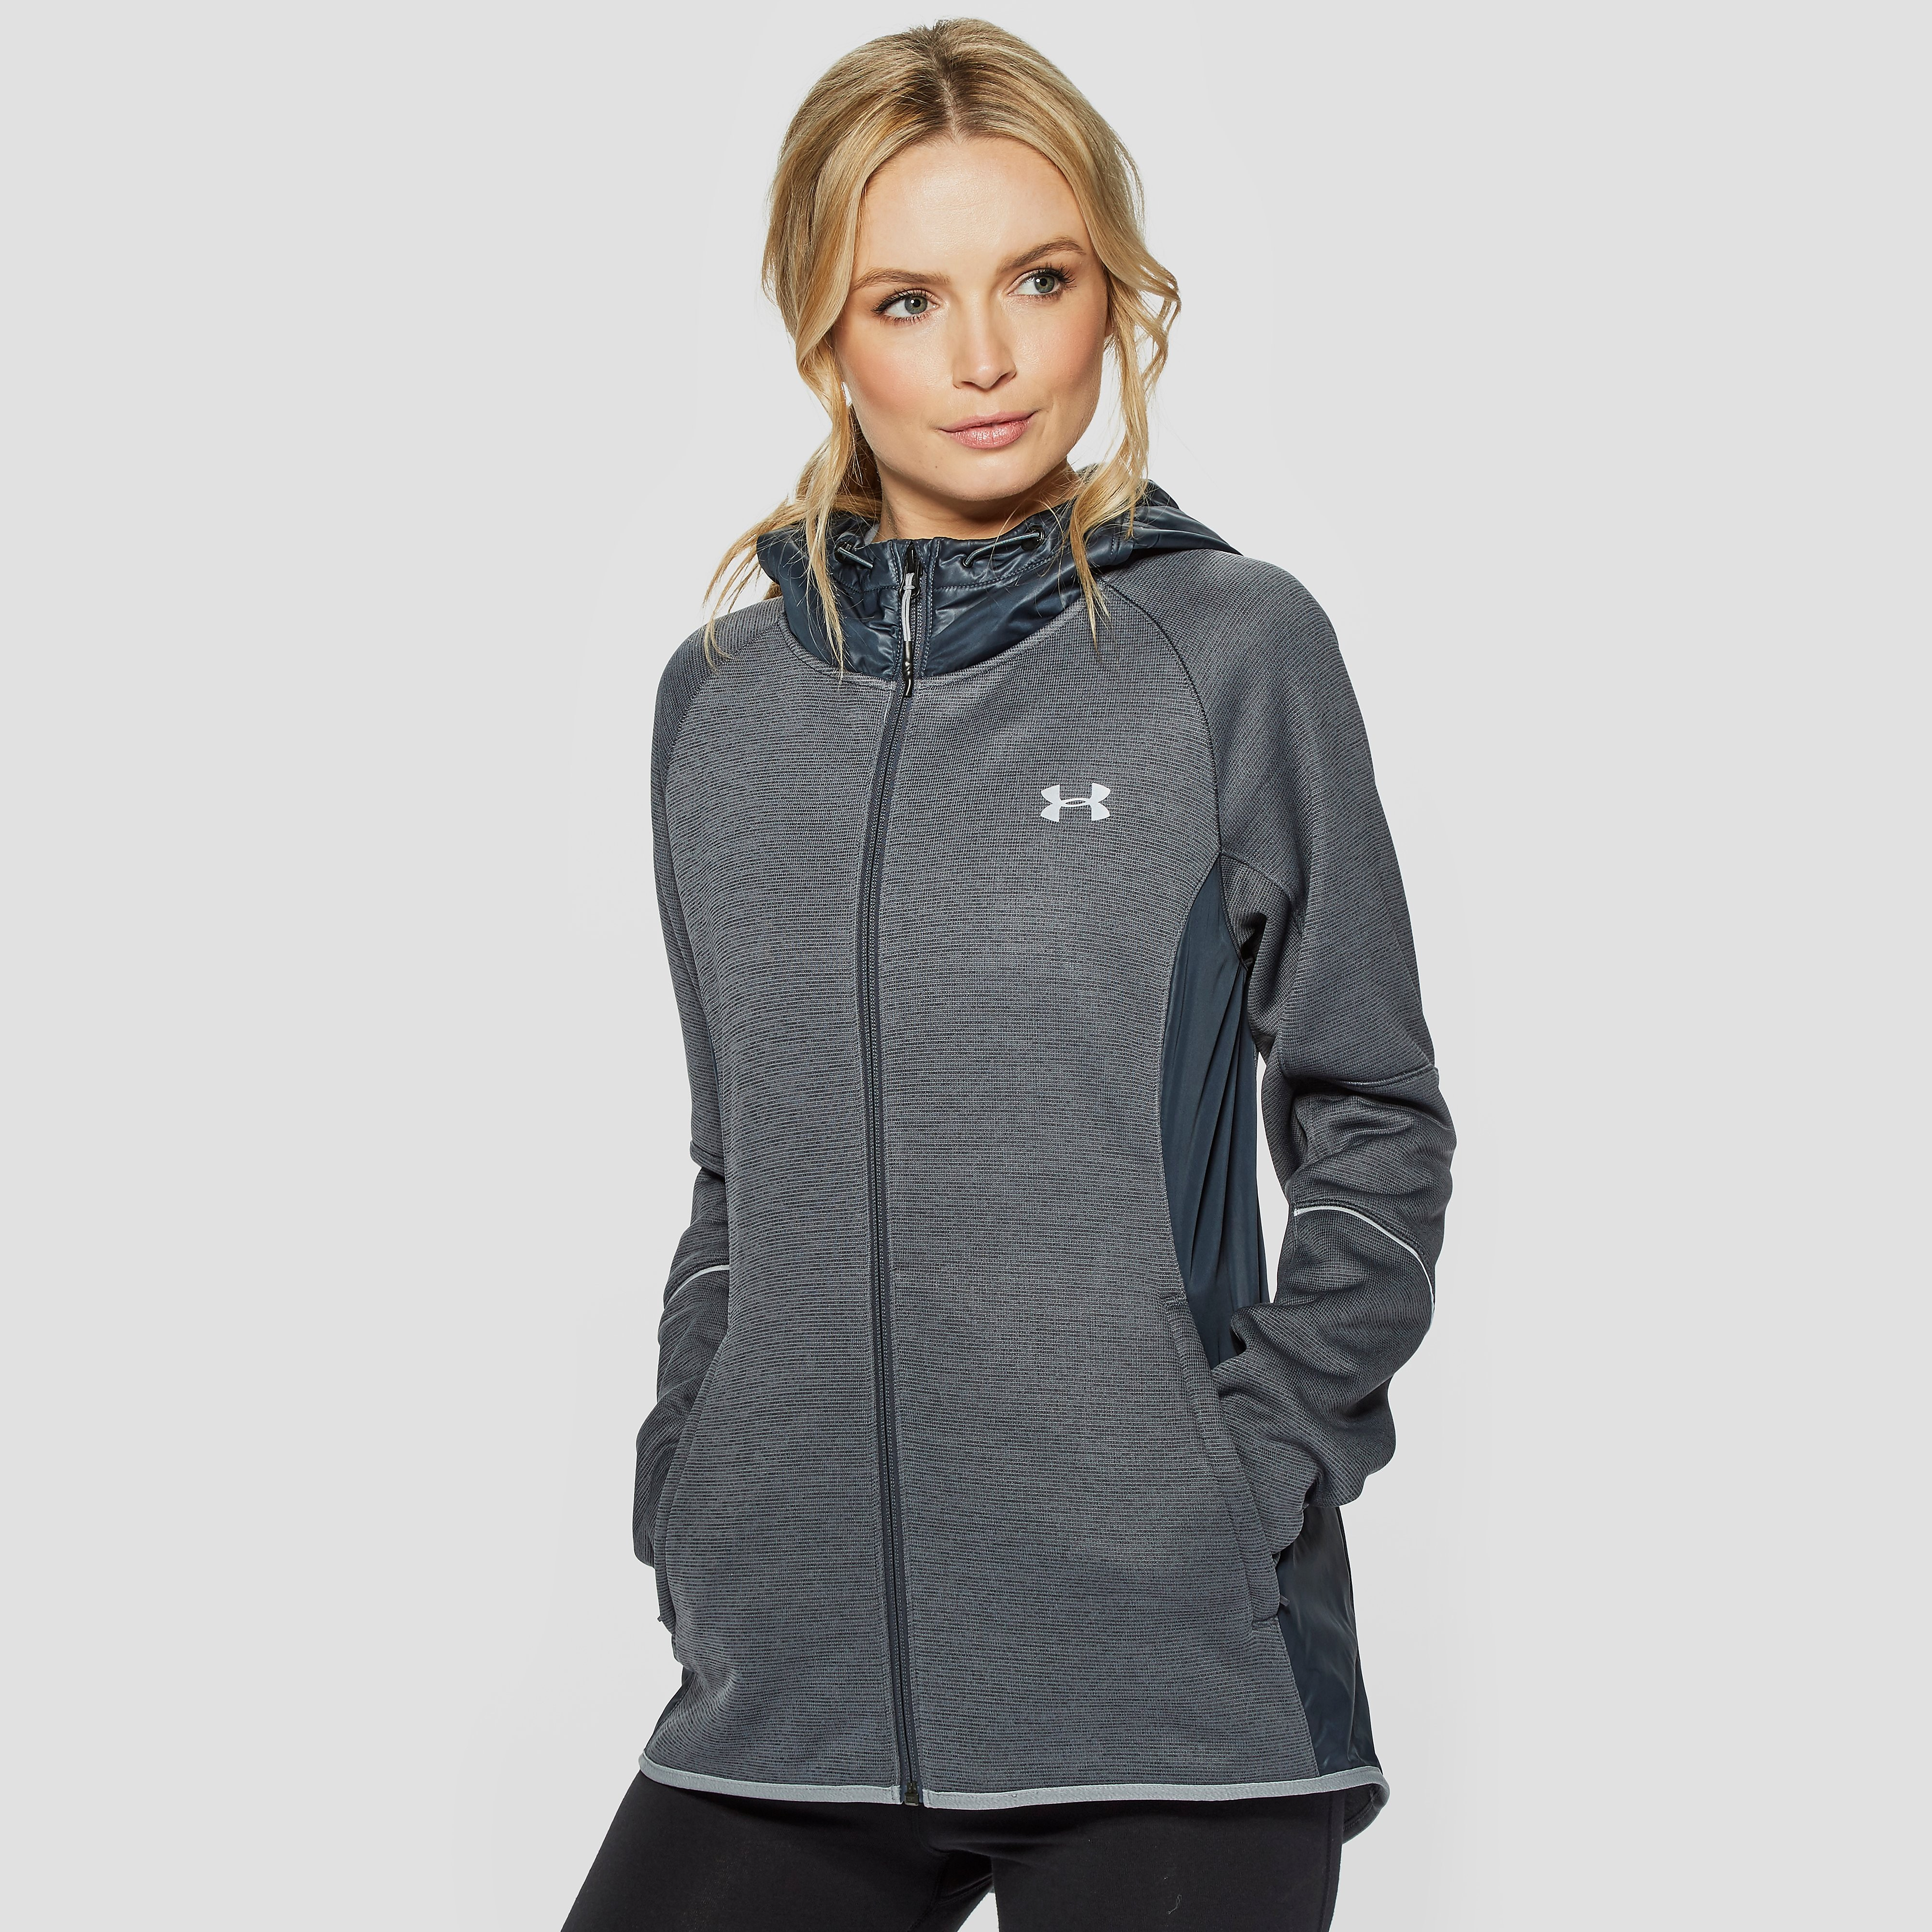 Under Armour Storm Swacket Full Zip Women's Jacket